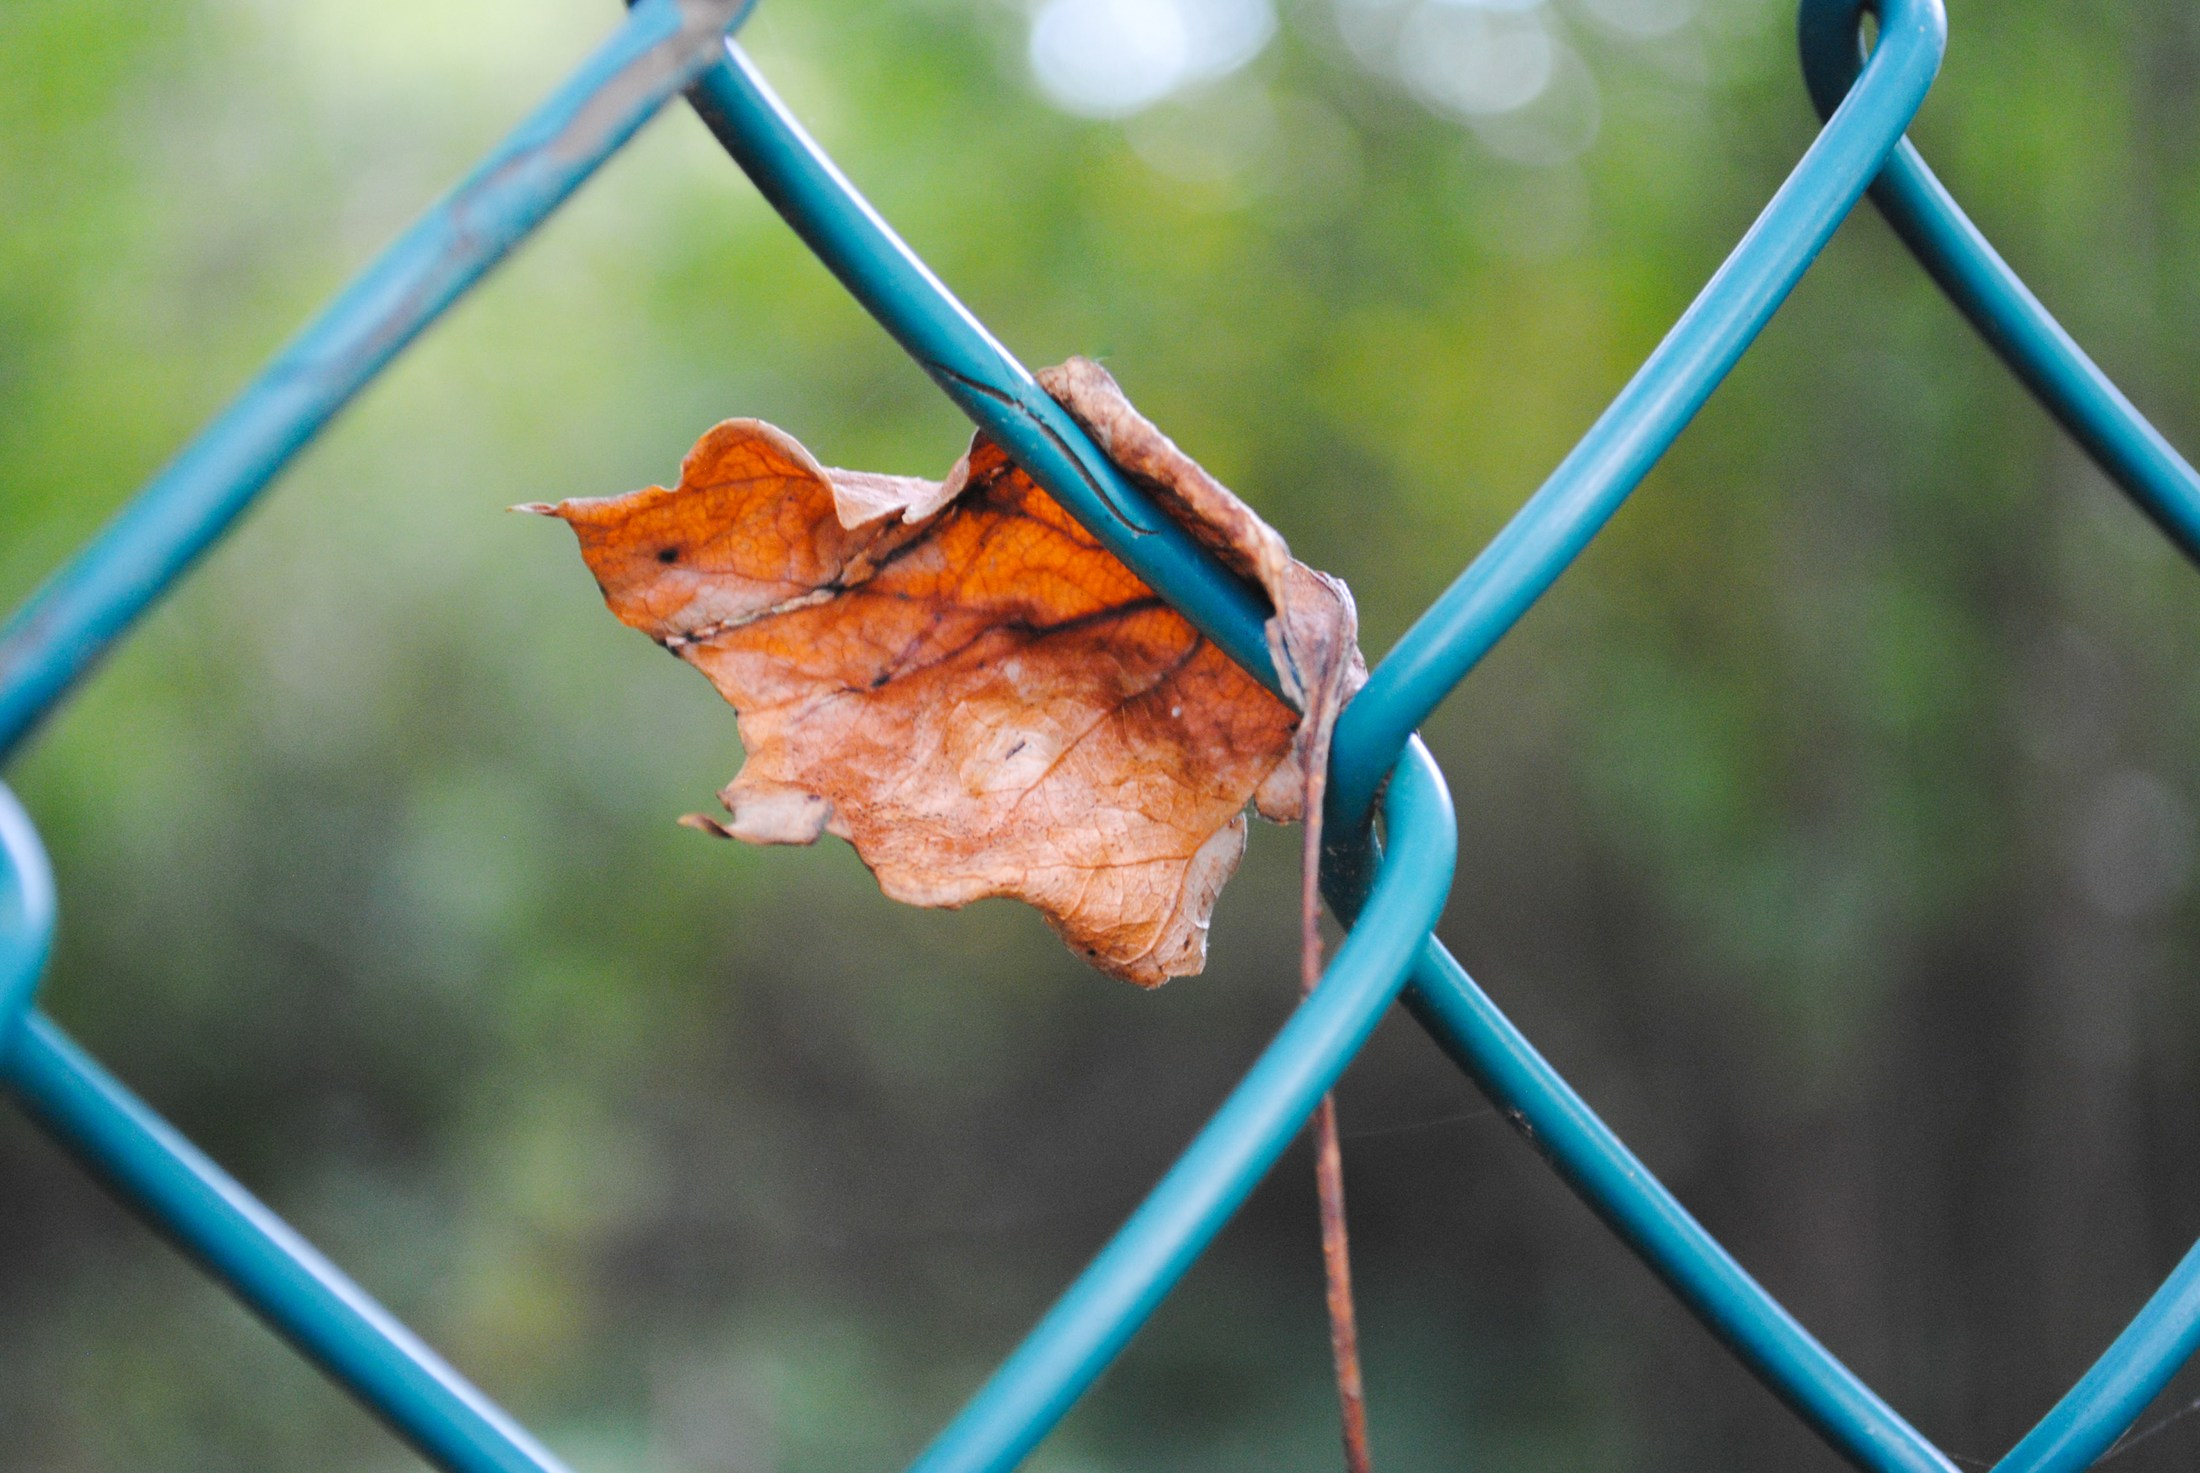 leaf stuck in fence